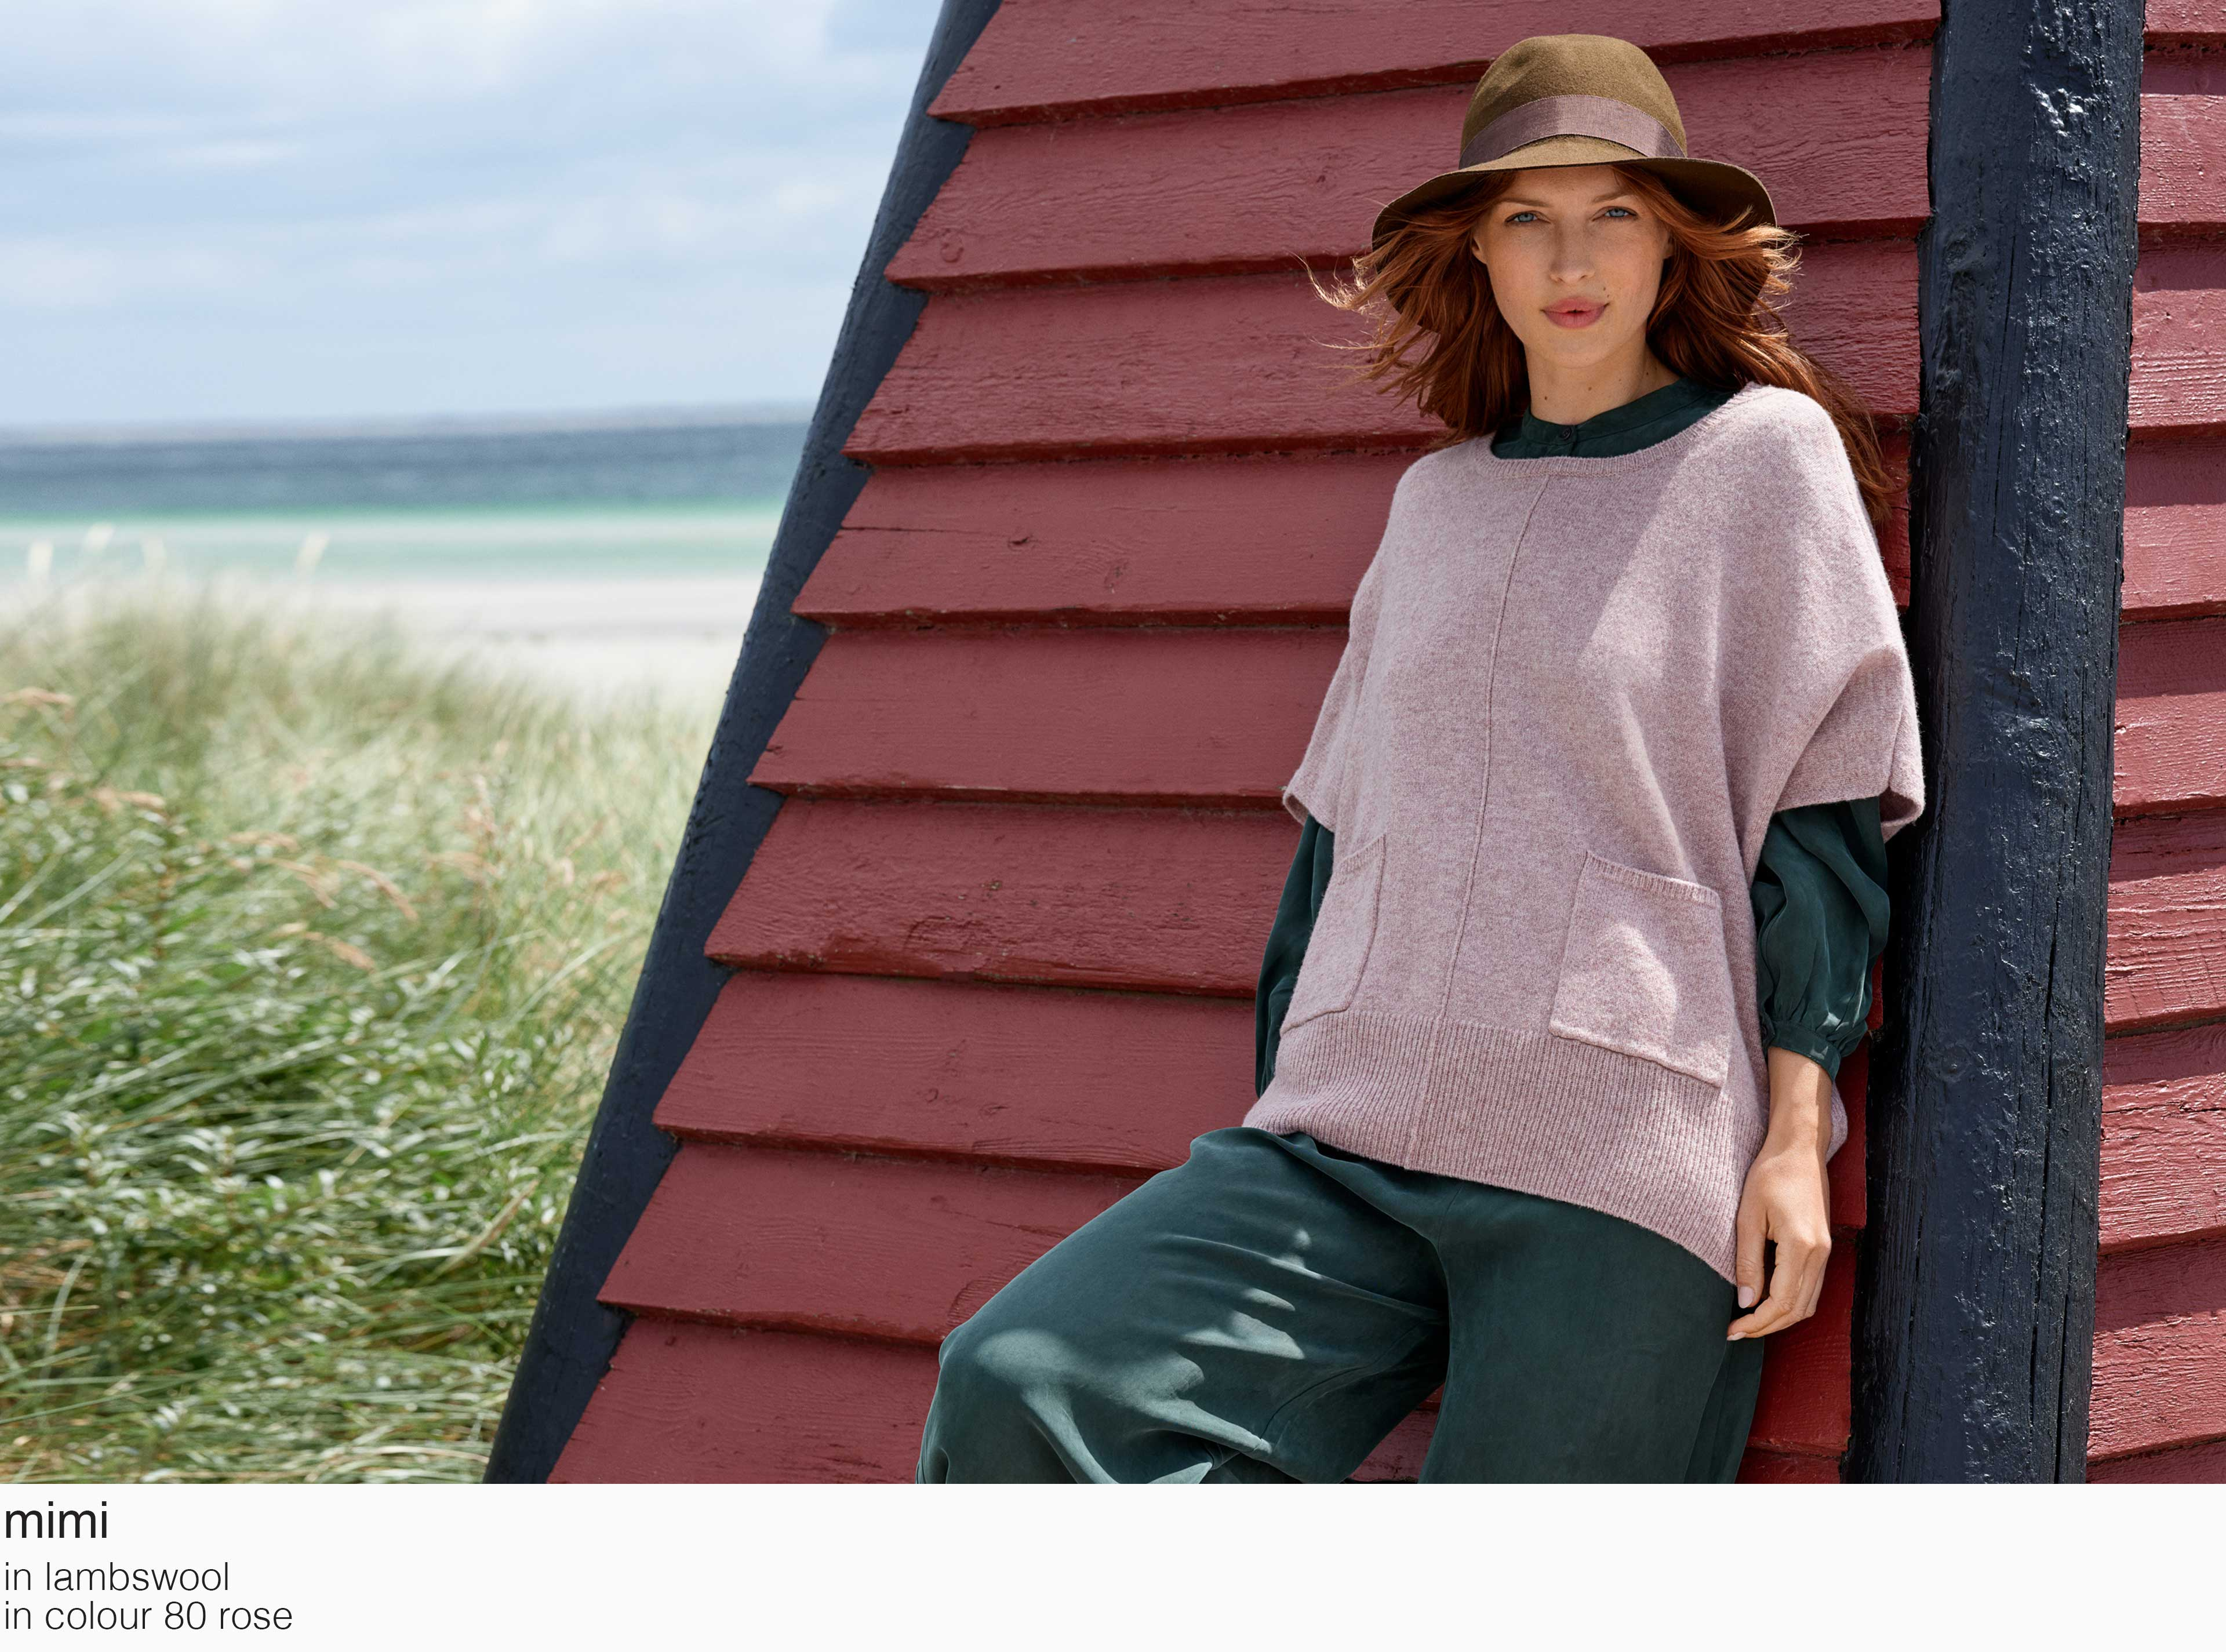 mansted mimi lambswool 80 rose aw19 aw 2019 Knitwear quality knit multicoloured colour colourful cotton yak lambswool soft versatile feminine beautiful details fashion favourit autumn winter bright colours pullover jumper t-shirt cardigan jacket strik kvalitetsstrik farverig bluser trøjer feminin strik til kvinder